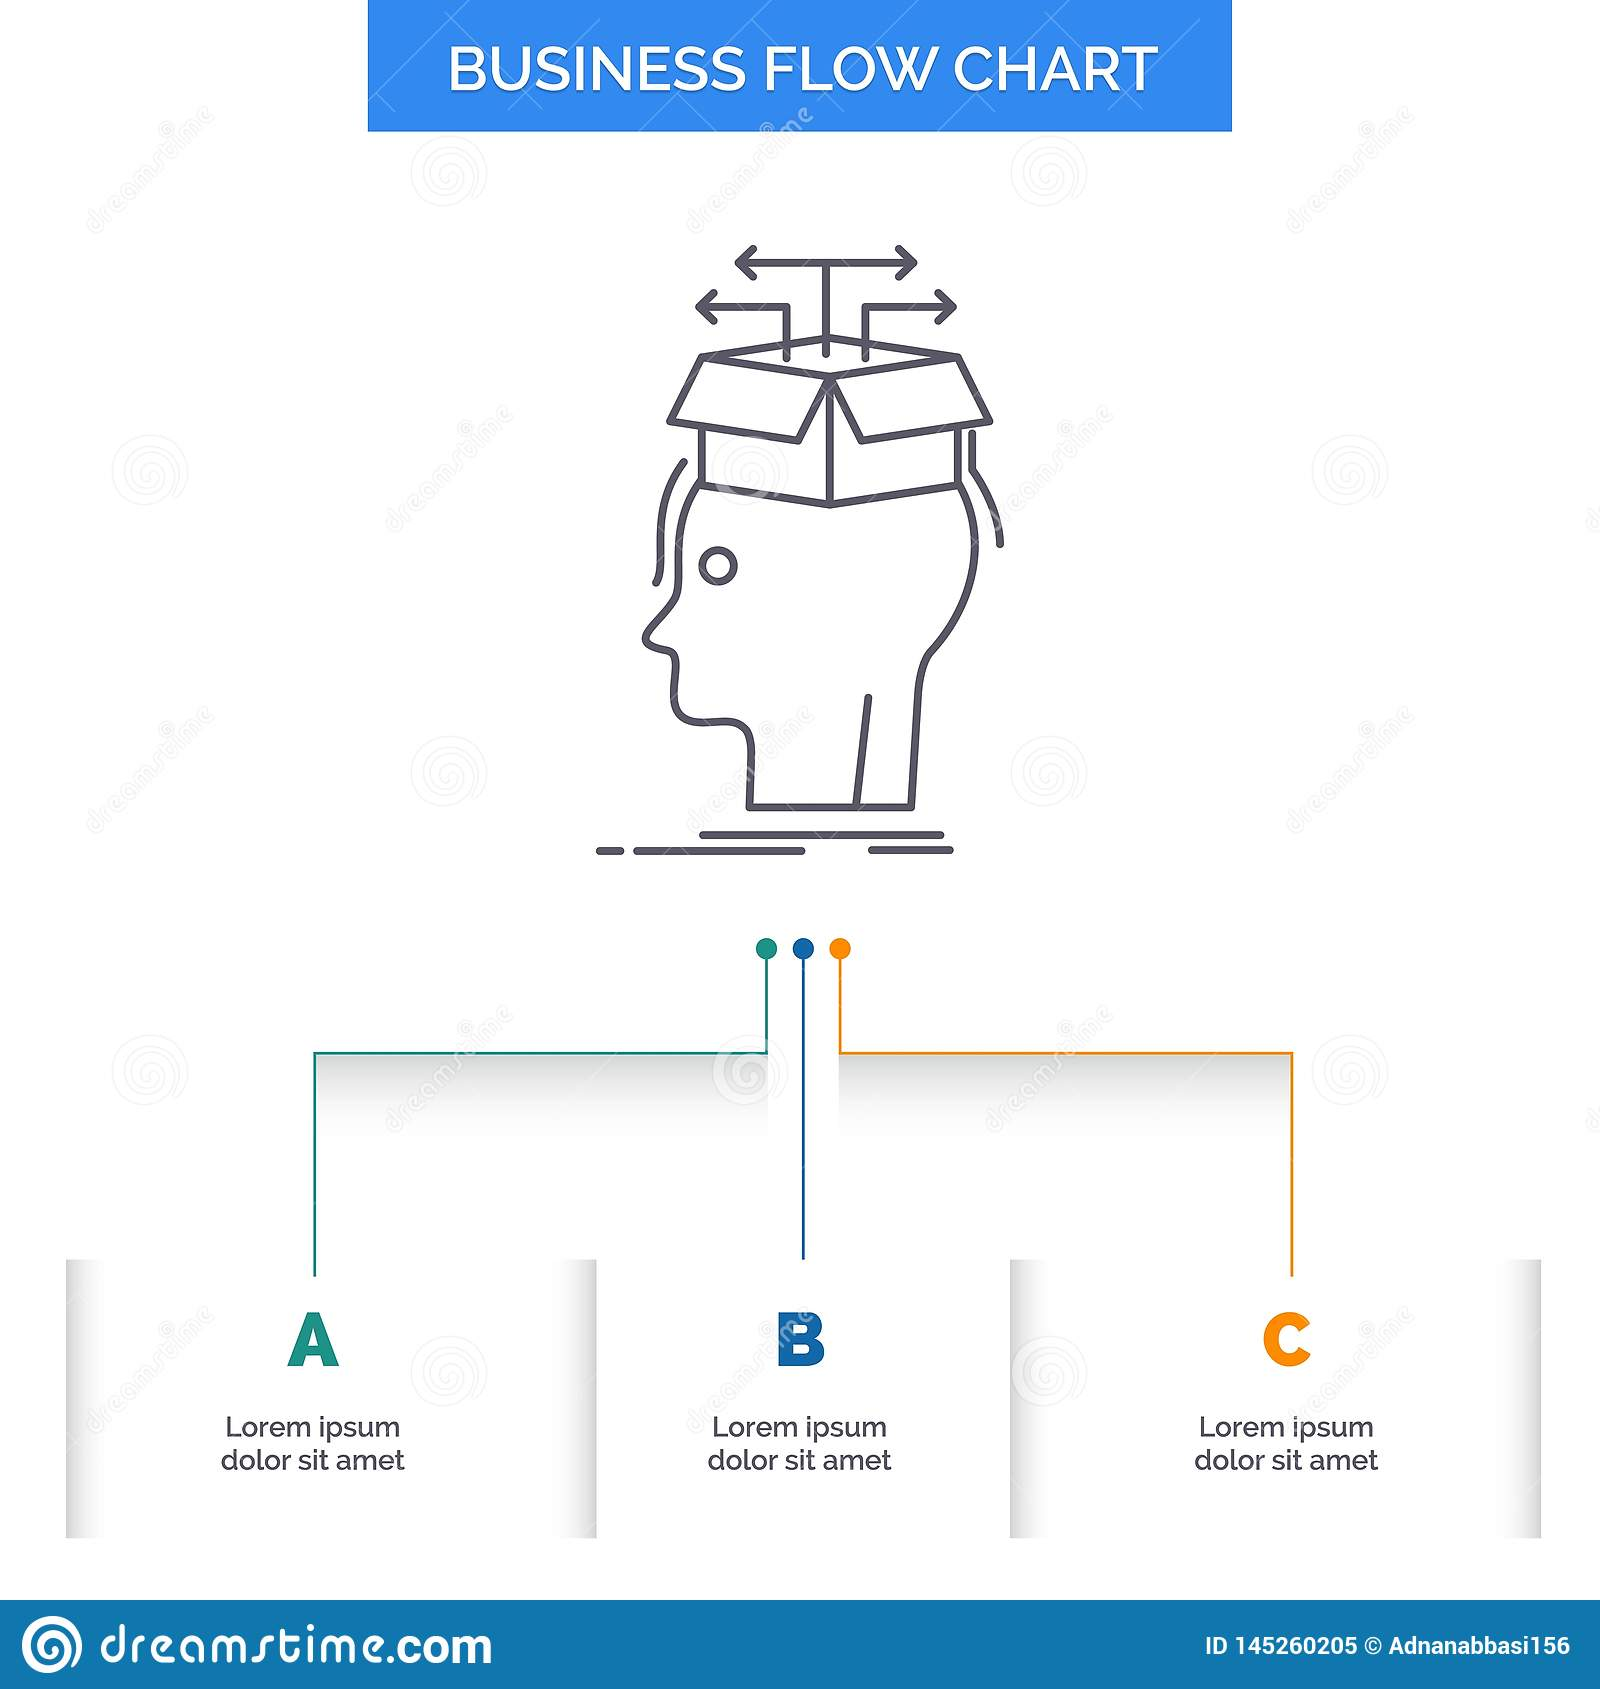 Data Extraction Head Knowledge Sharing Business Flow Chart Design With 3 Steps Line Icon For Presentation Background Template Stock Vector Illustration Of Blue Outdoors 145260205